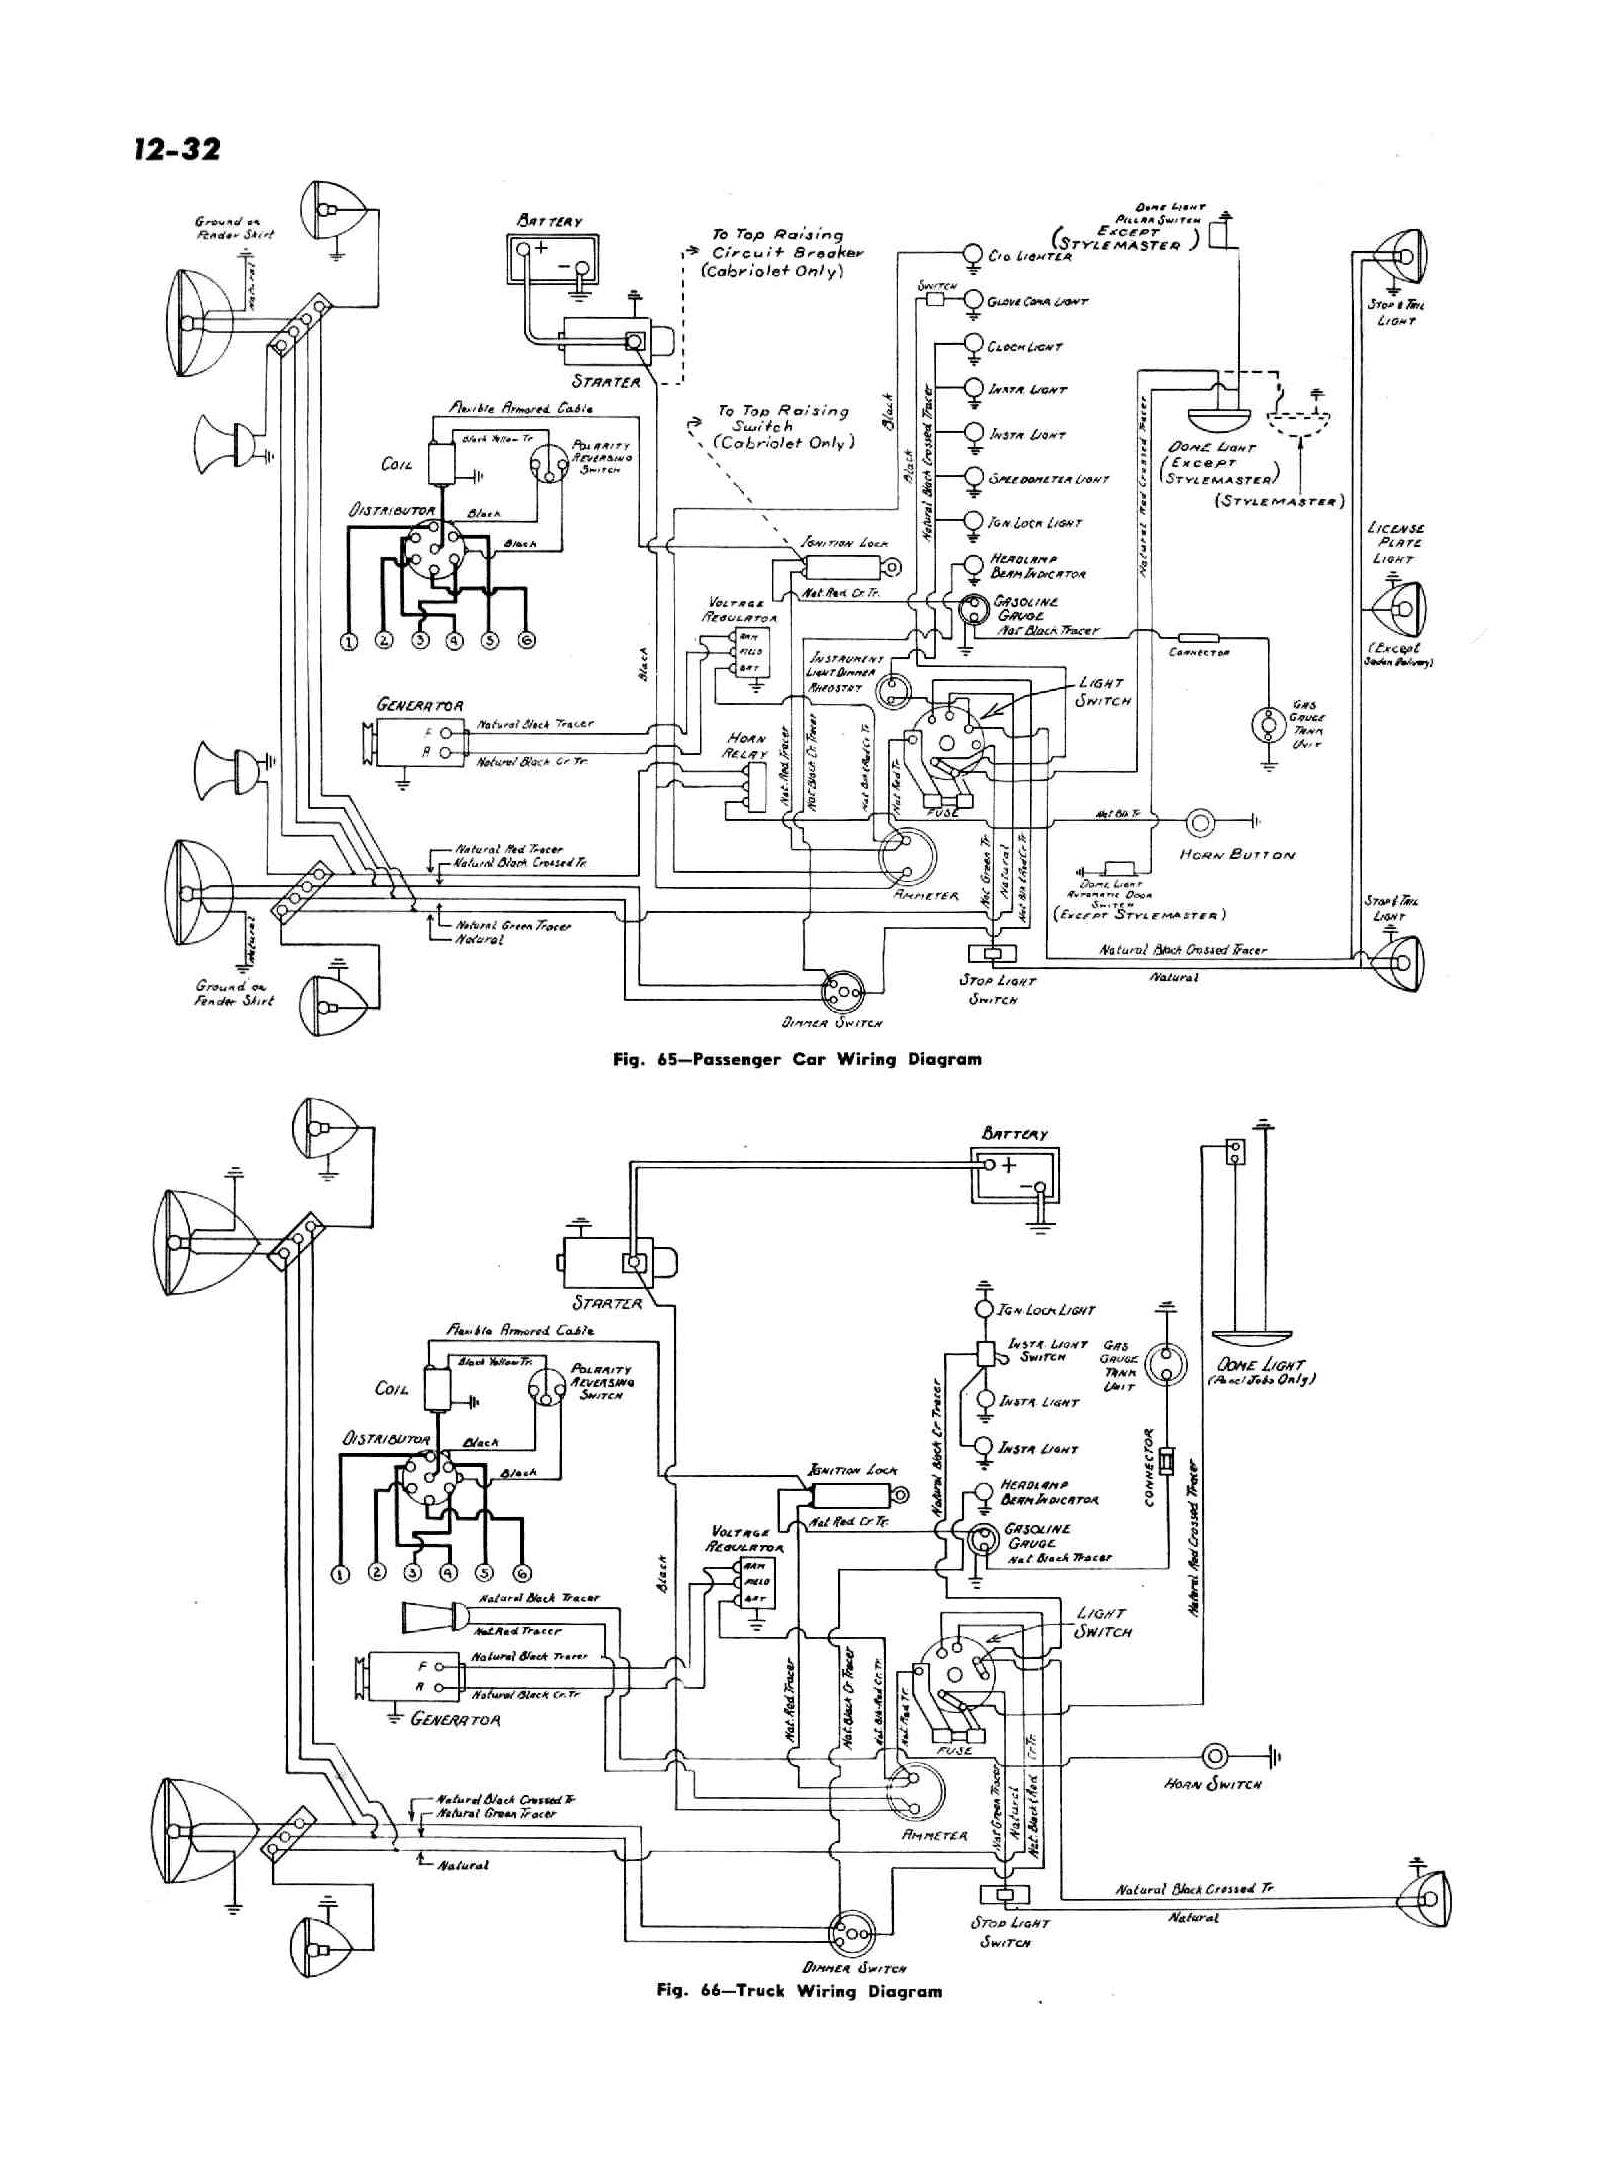 46 Chevy Truck Rat Rod Wiring Diagram Chevy Wagon